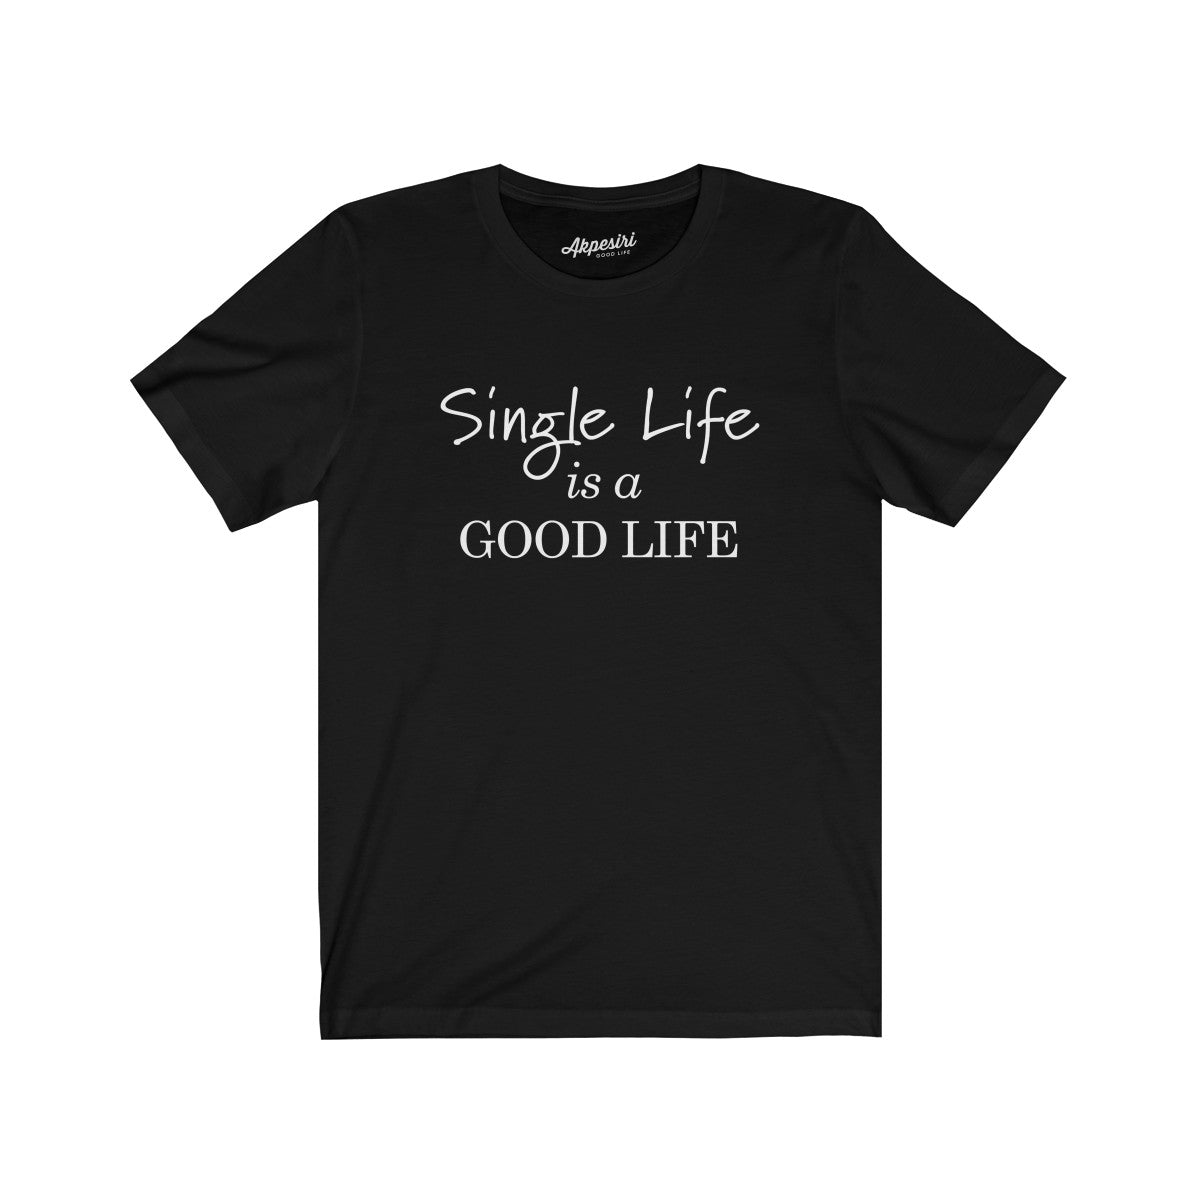 Single Life is a Good Life Unisex Tee